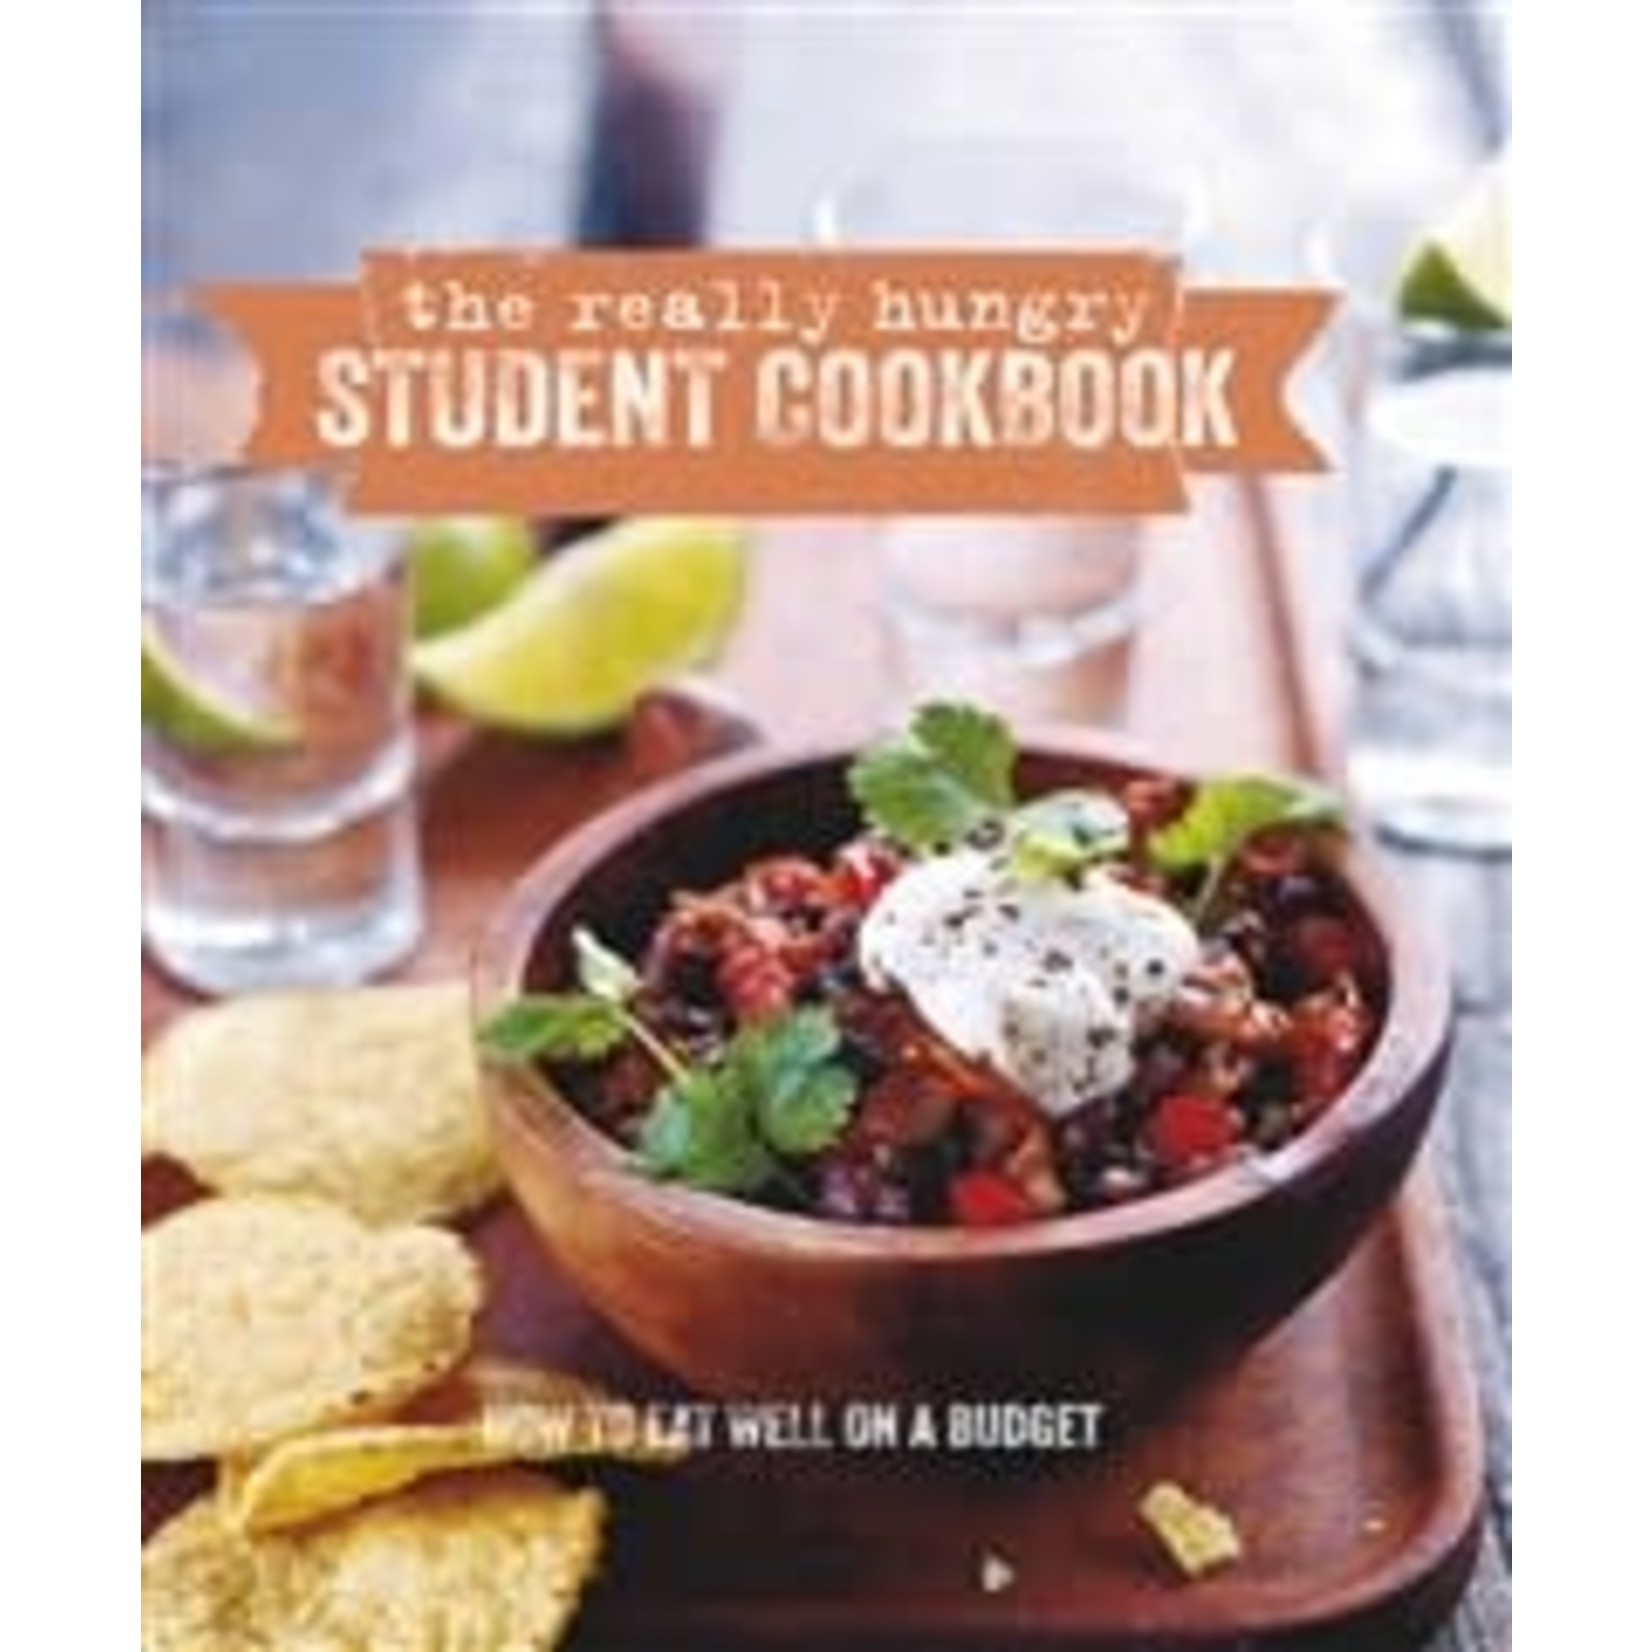 Really Hungary Student Cookbook